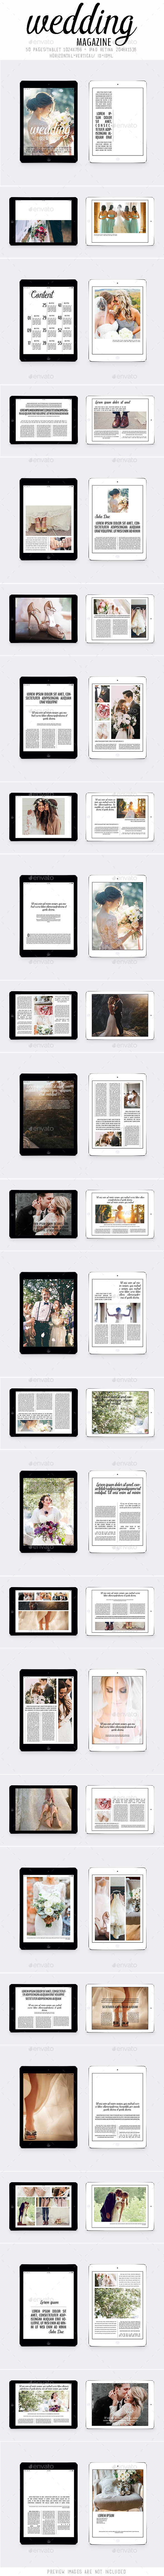 Ipad&Tablet Wedding Magazine - Digital Magazines ePublishing